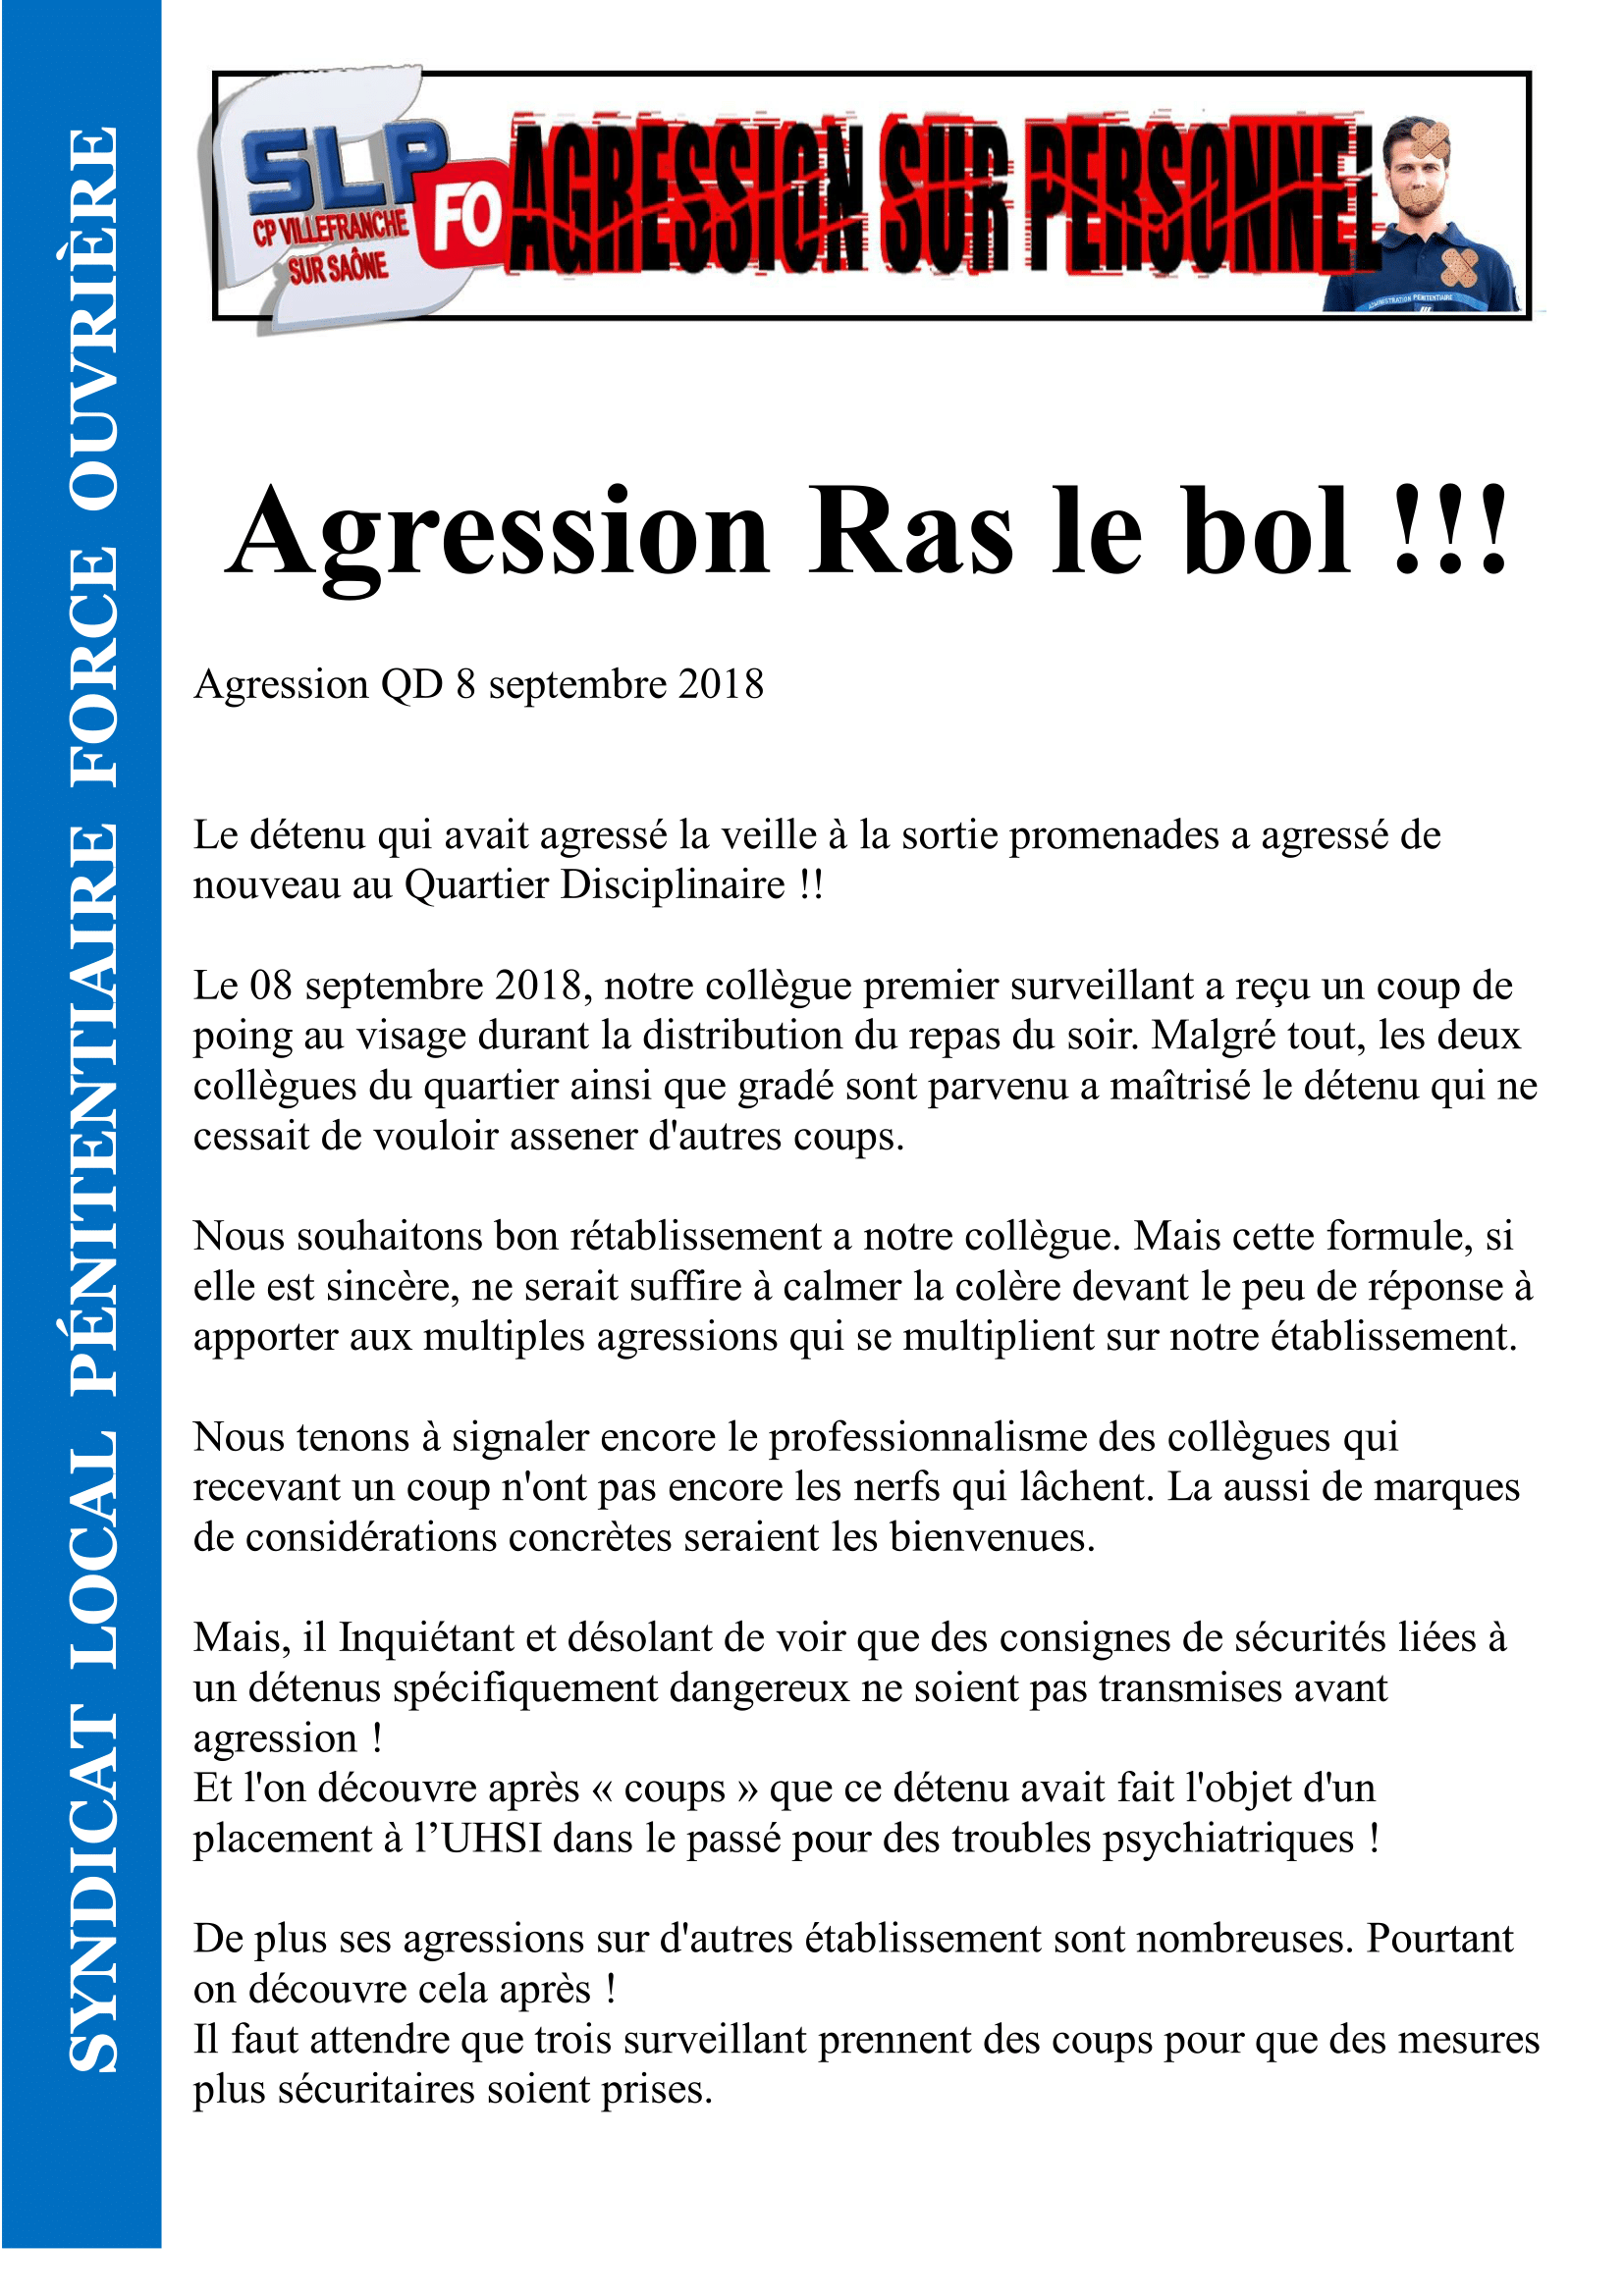 Agression QD 8 septembre 2018-1